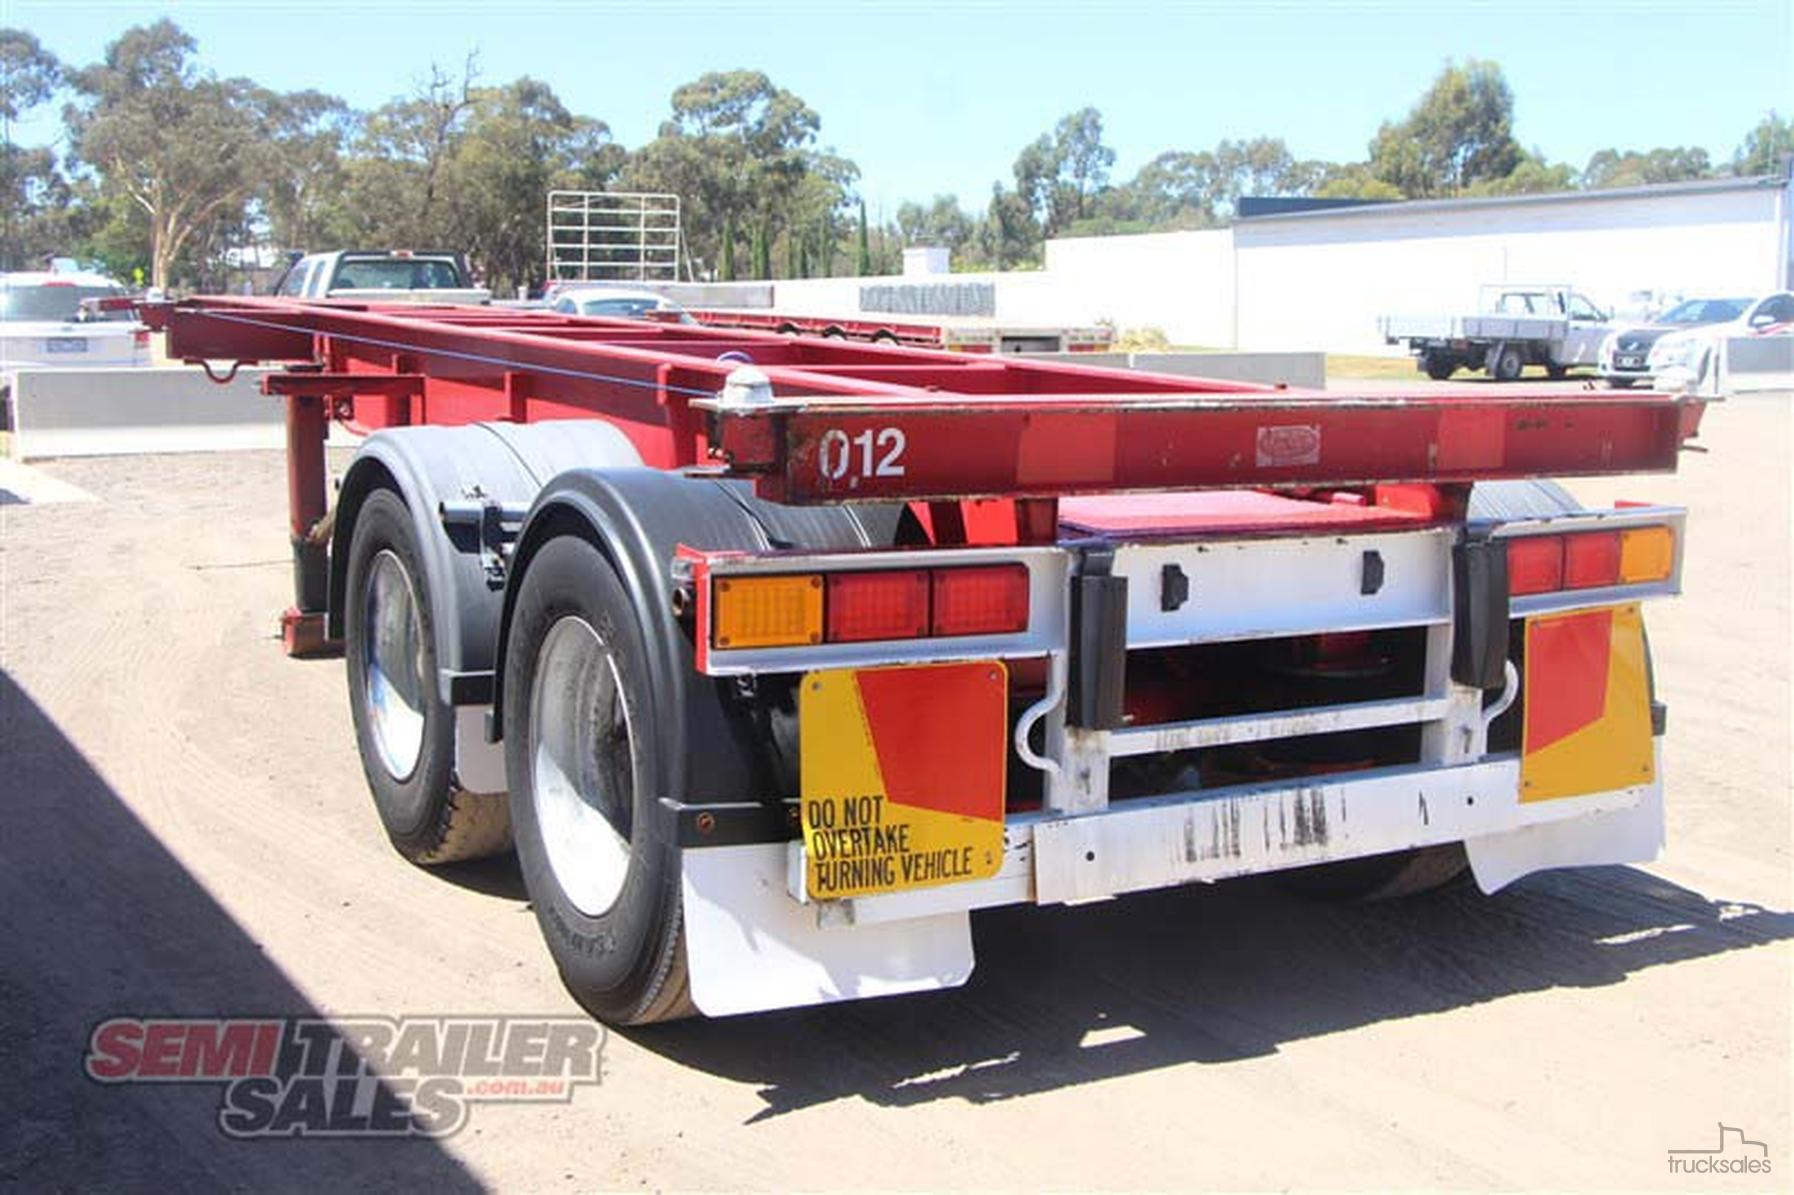 1994 Krueger 30ft Skel Semi Trailer With Container Pins Trucksales Wiring Colour Code Australia